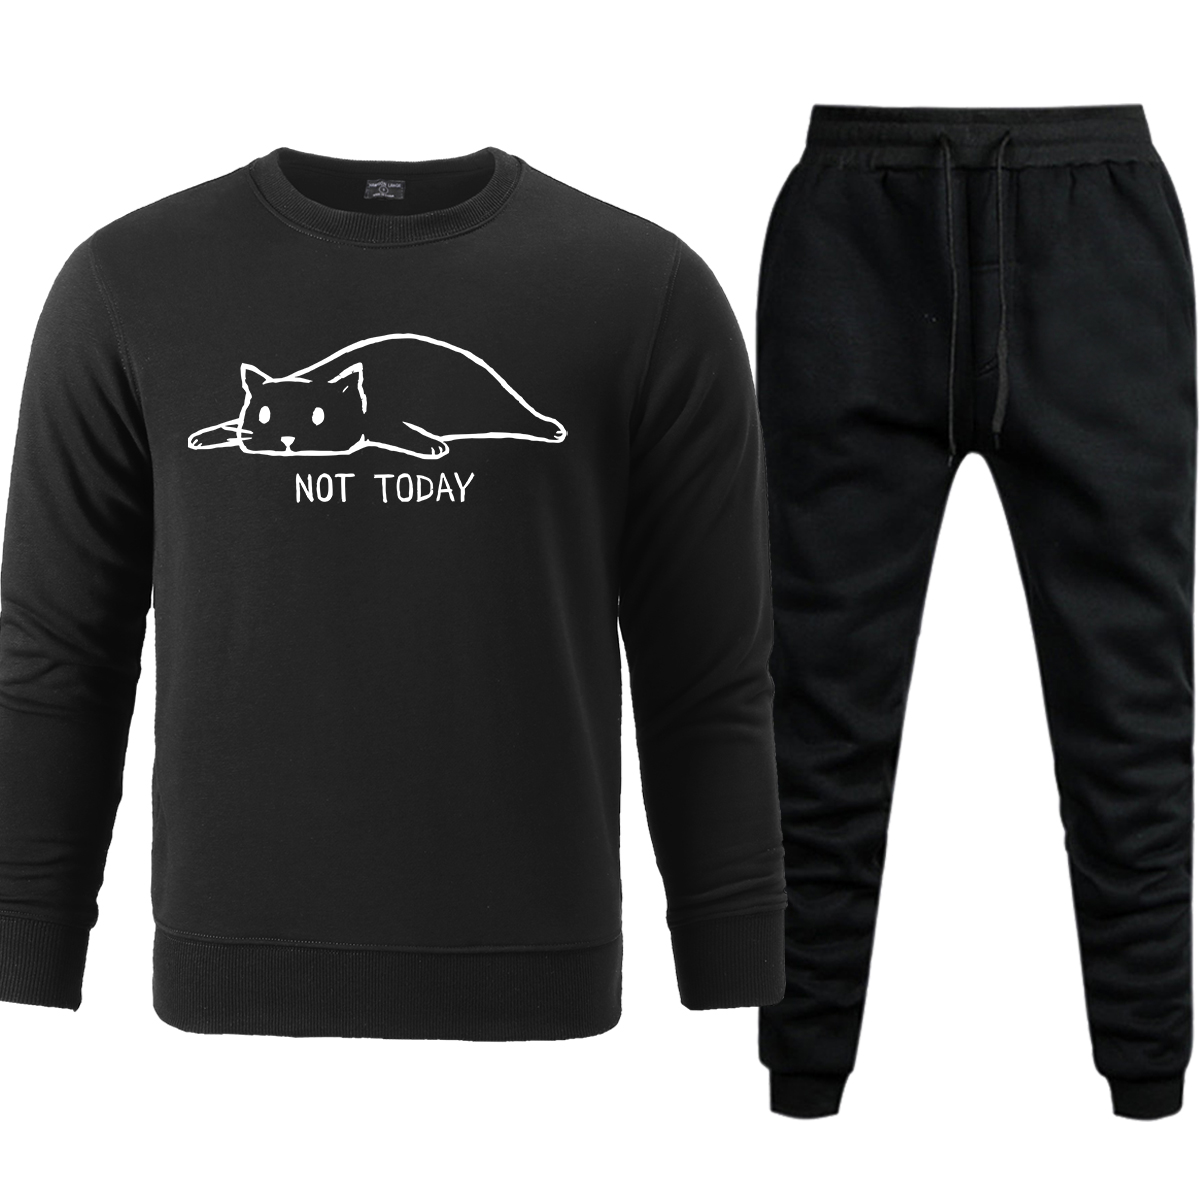 NOT TODAY Lazy Cat Sweatshirt Pants Men Sets 2019 Autumn Winter Warm Casual Mens Set Pullover Sweatshirts Sweatpants Pant Hoodie